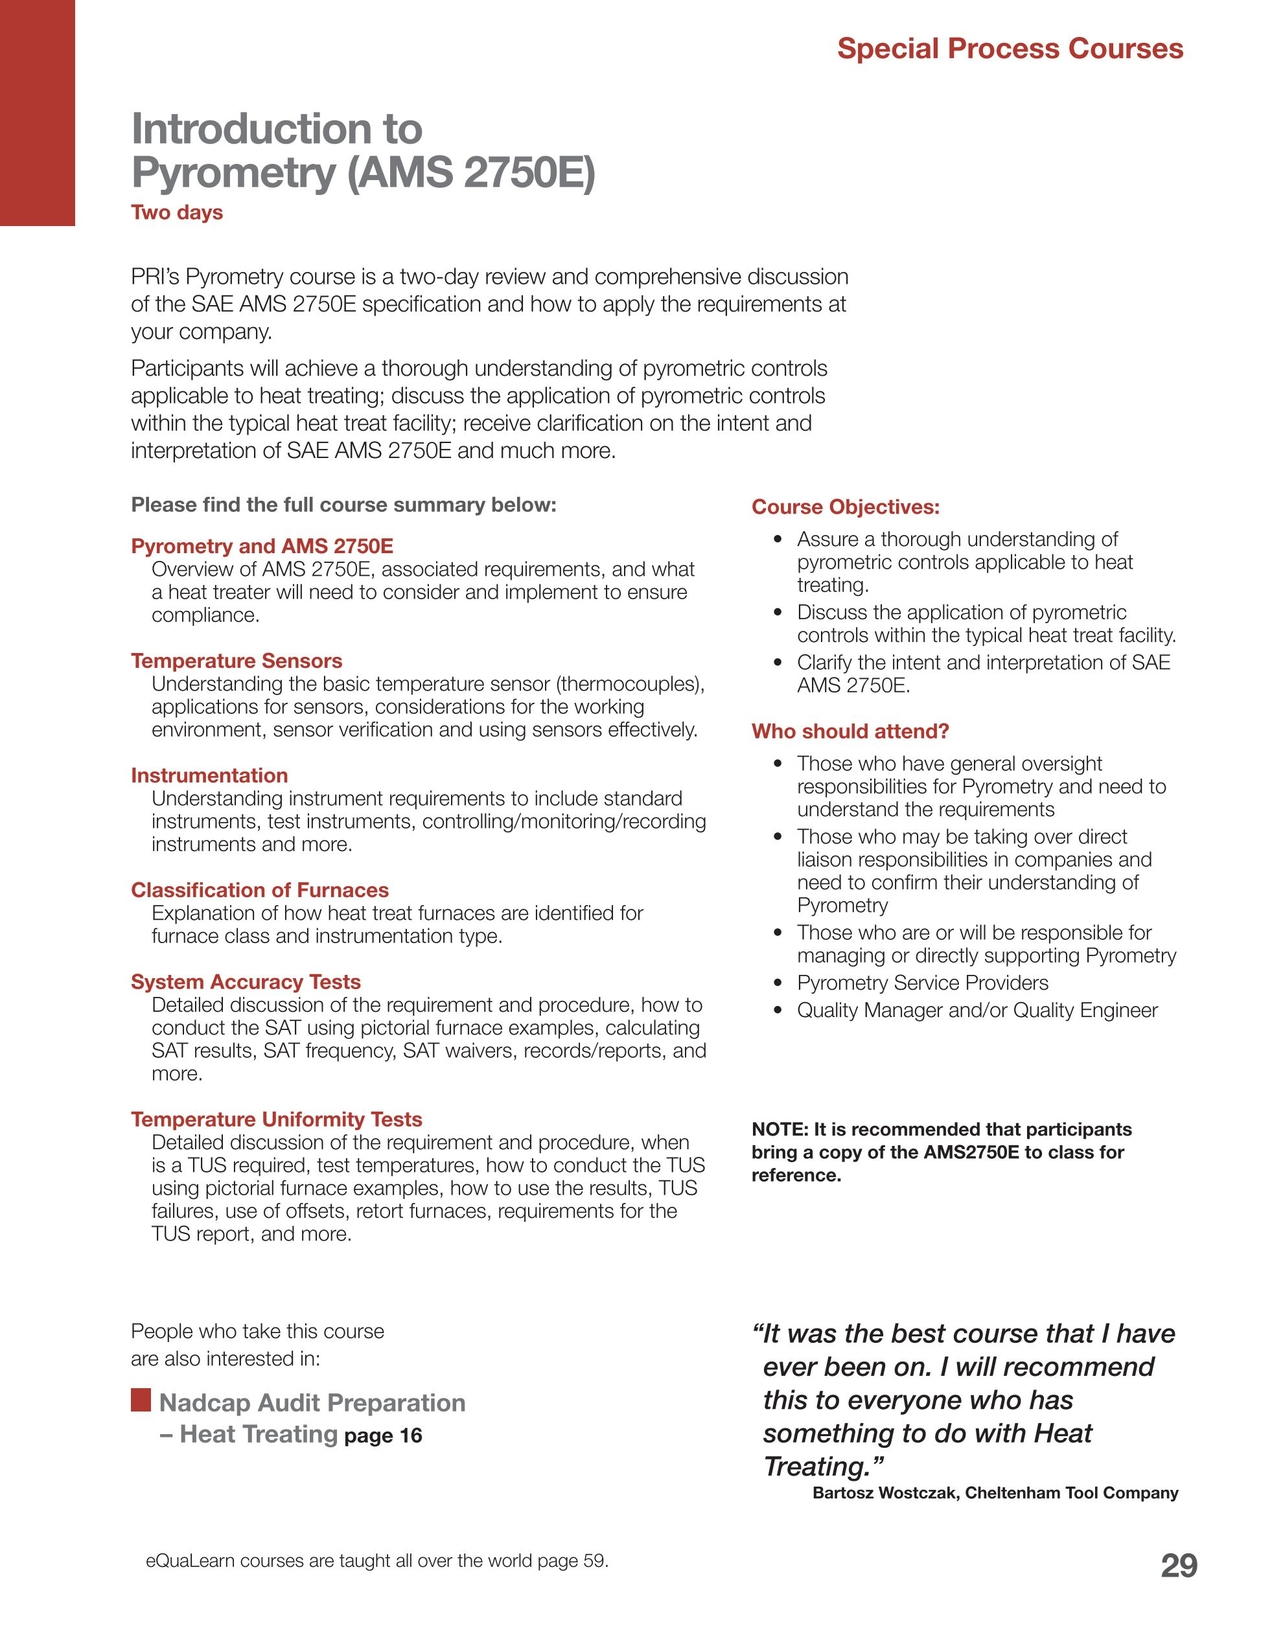 eQuaLearn Course Catalog - April 2015